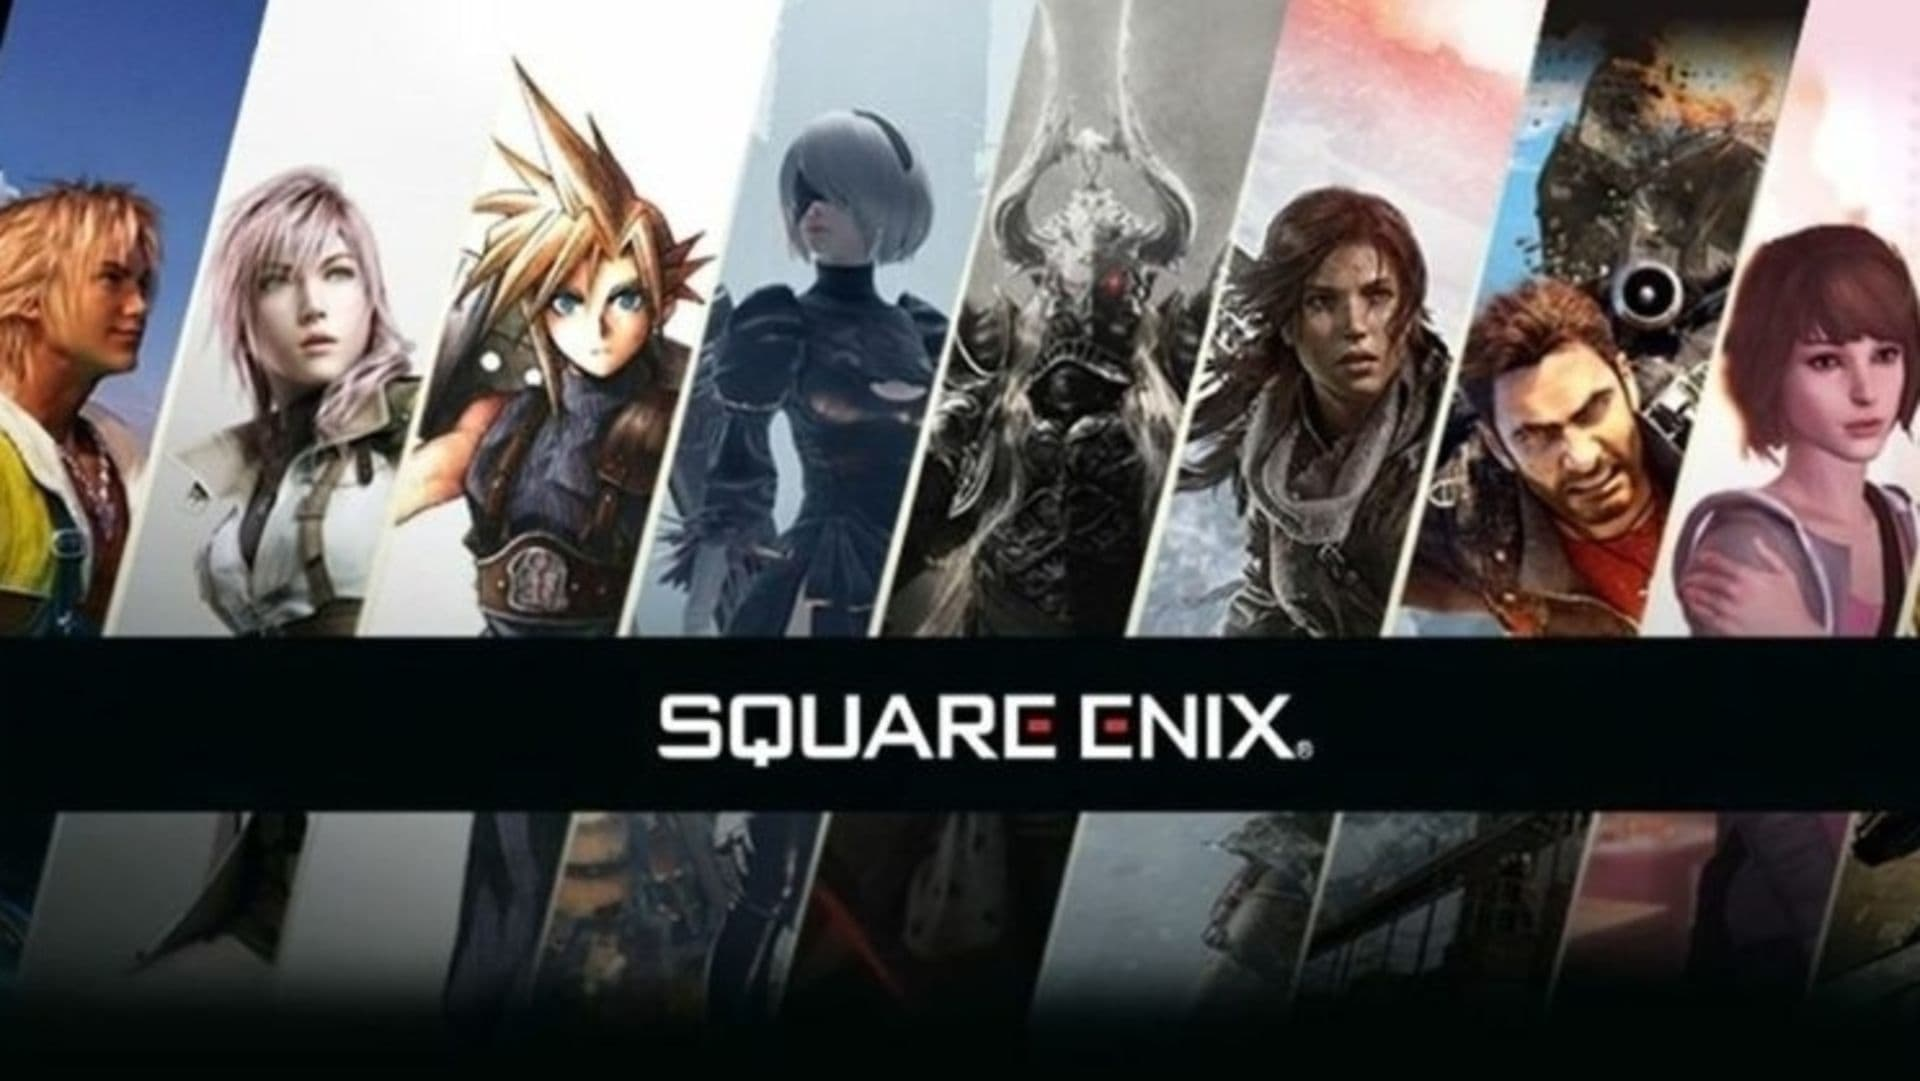 Square Enix is coming to this year's E3 trade fair